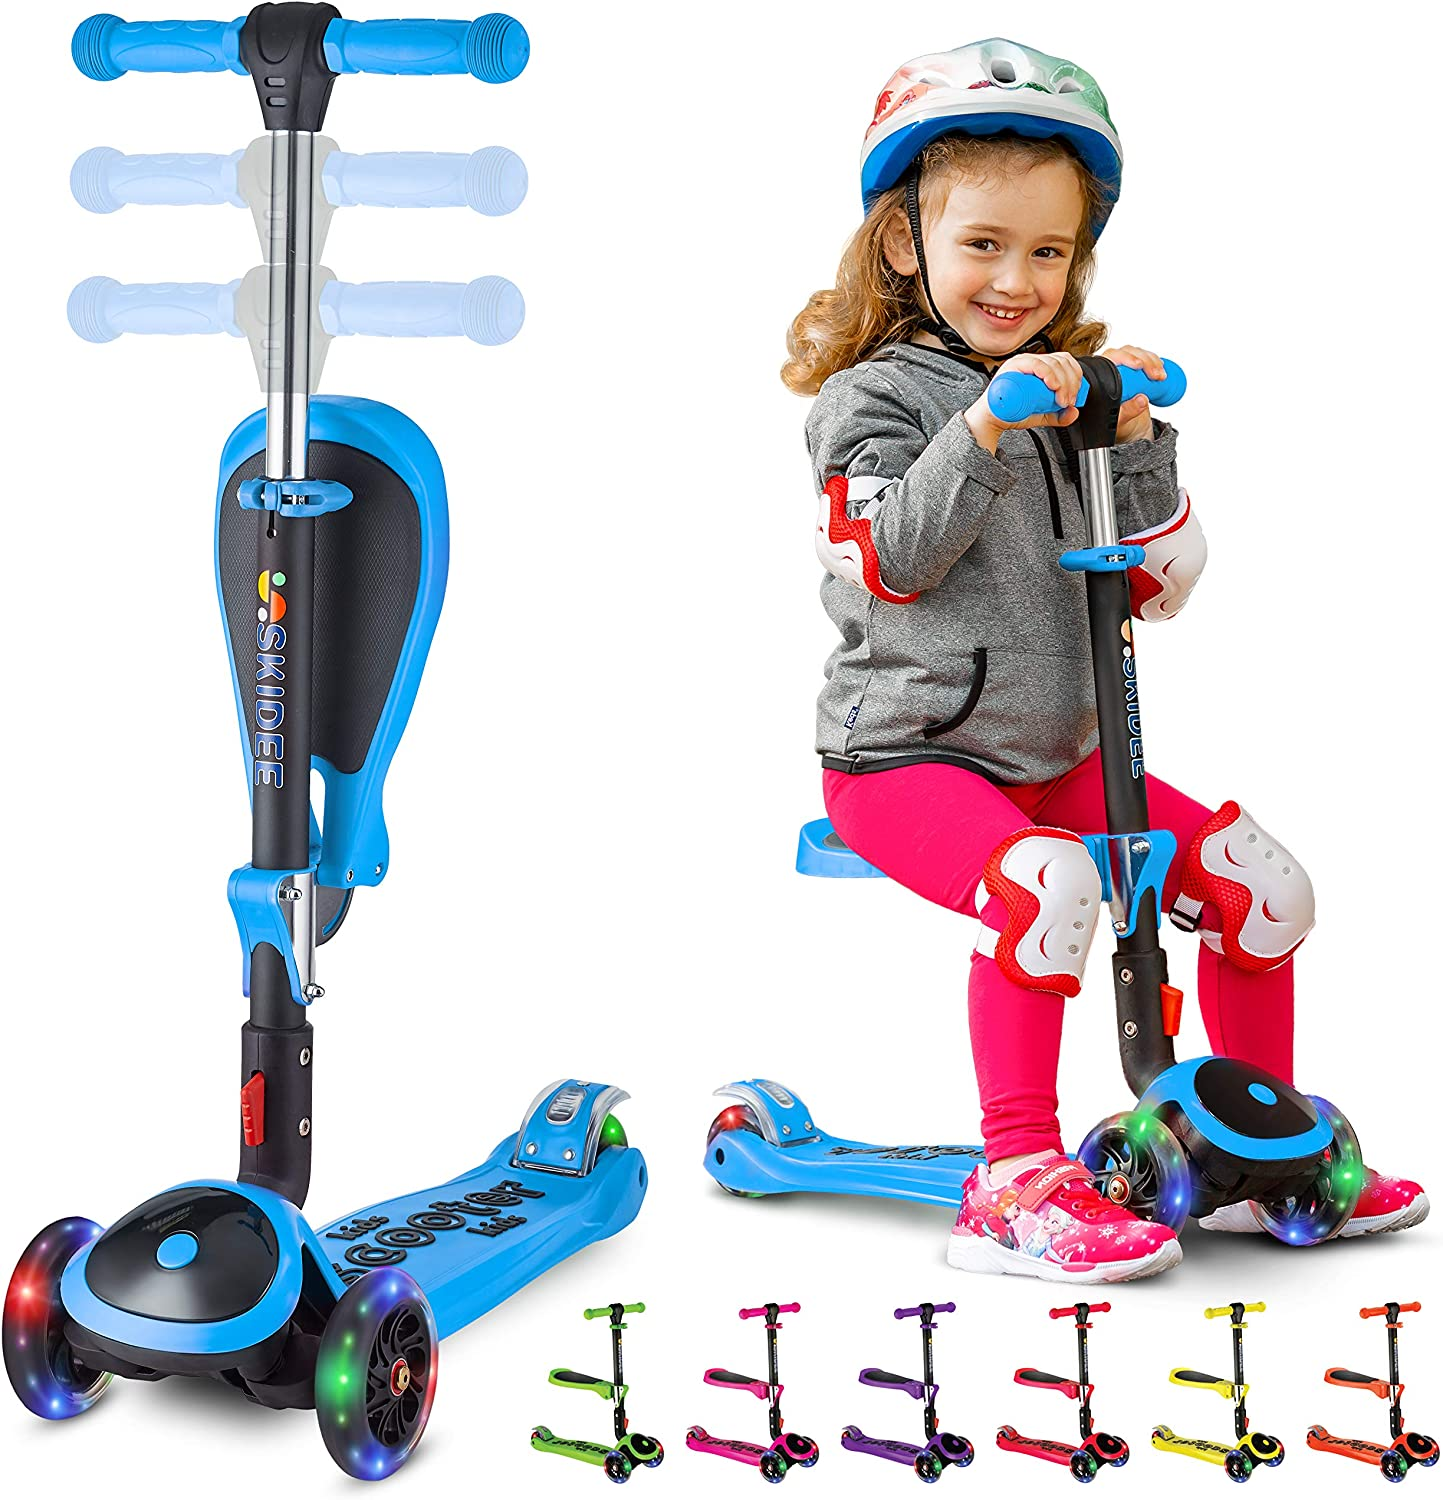 Kick Scooters for Kids Ages Memphis Mall 3-5 Year Adj Suitable Old 2-12 Super popular specialty store